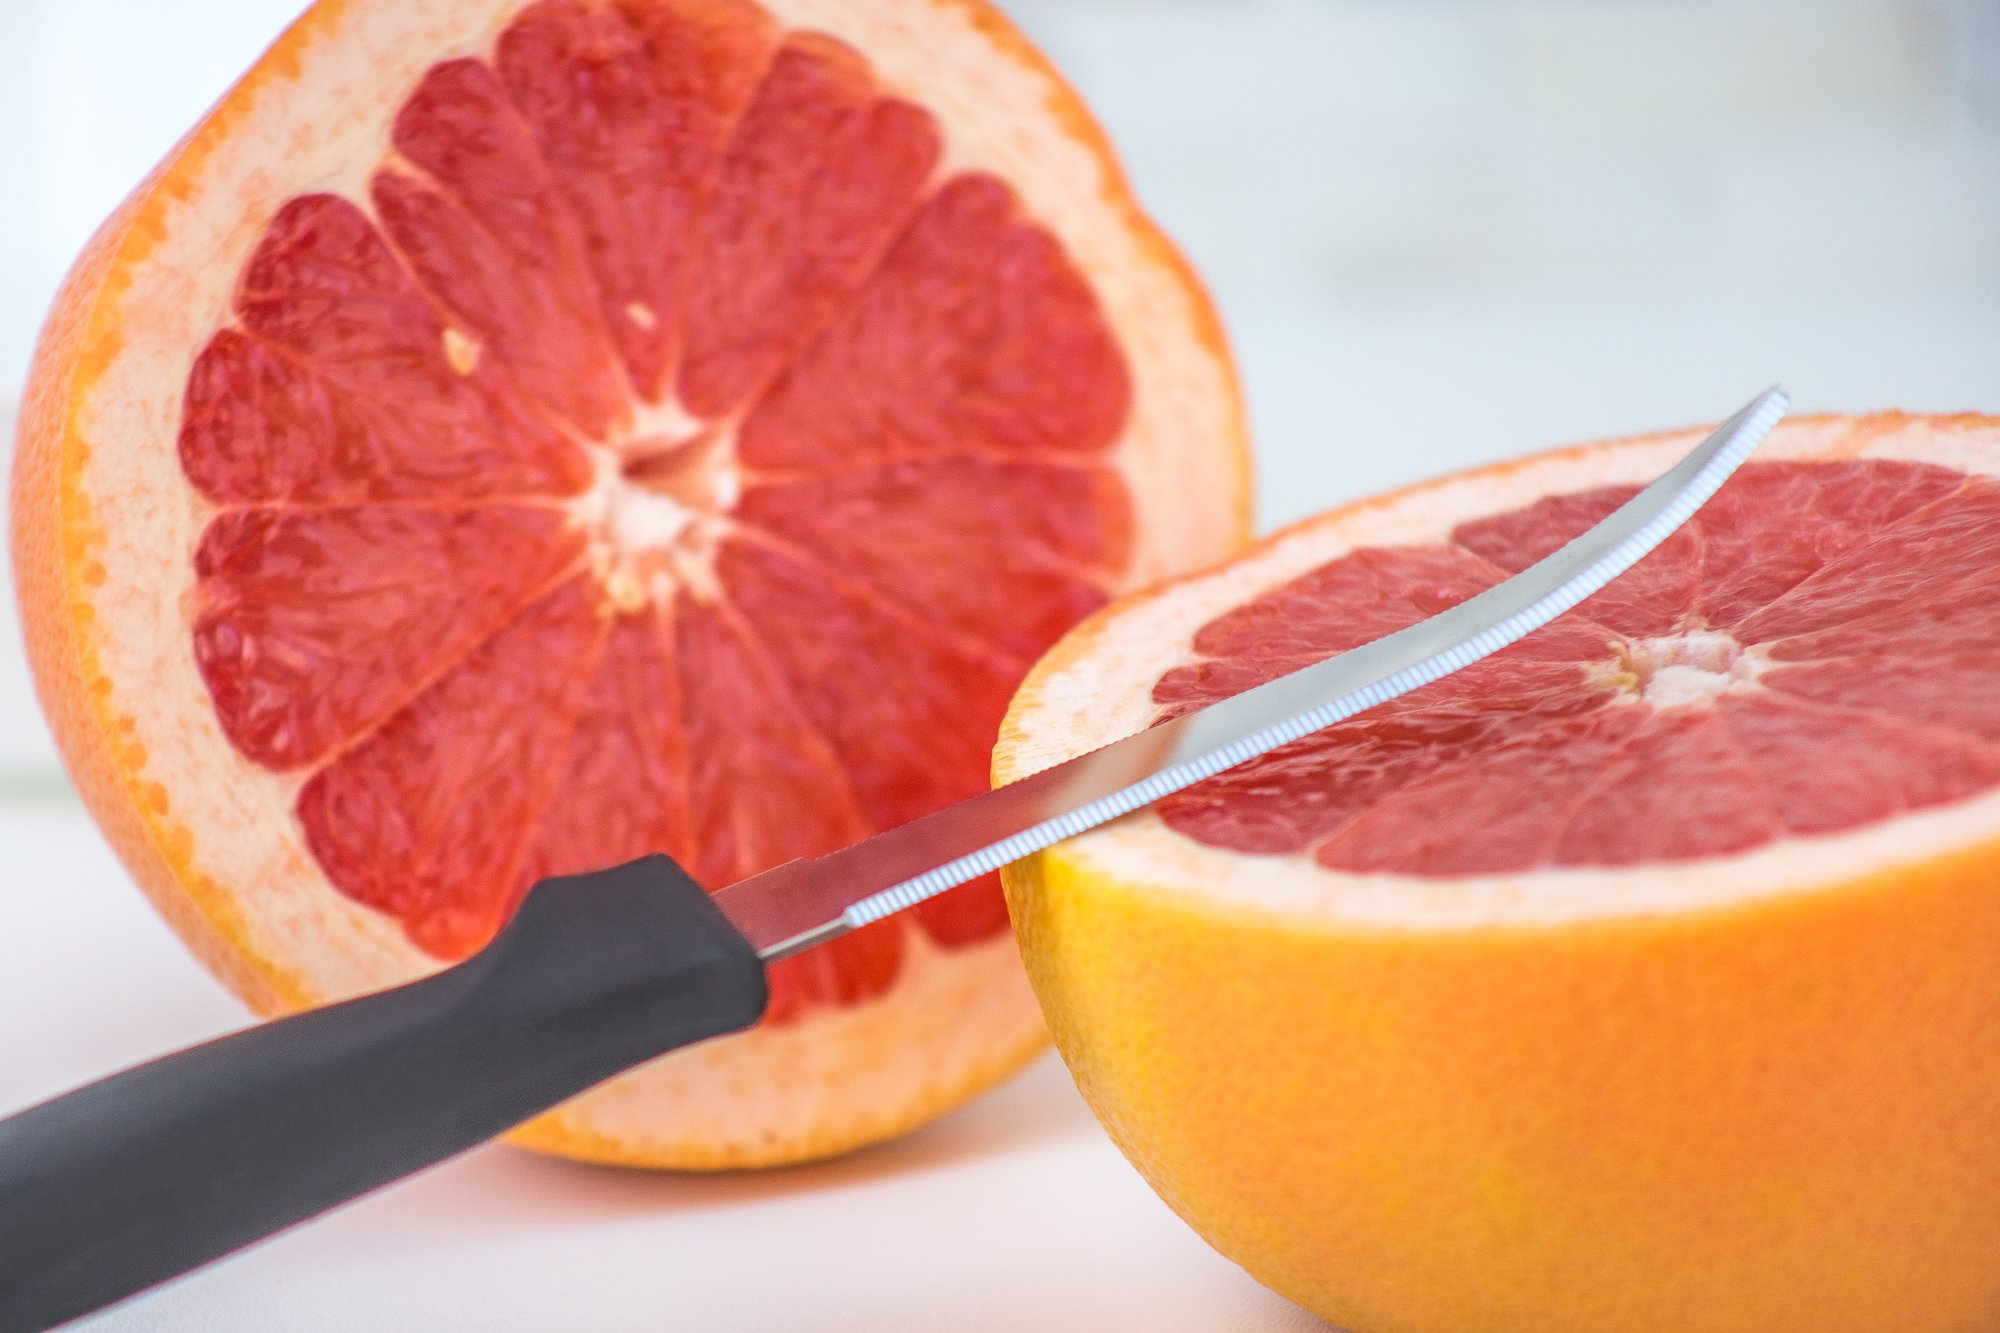 Fox Run 6601 Grapefruit Knife, Stainless Steel and Plastic by Fox Run (Image #5)